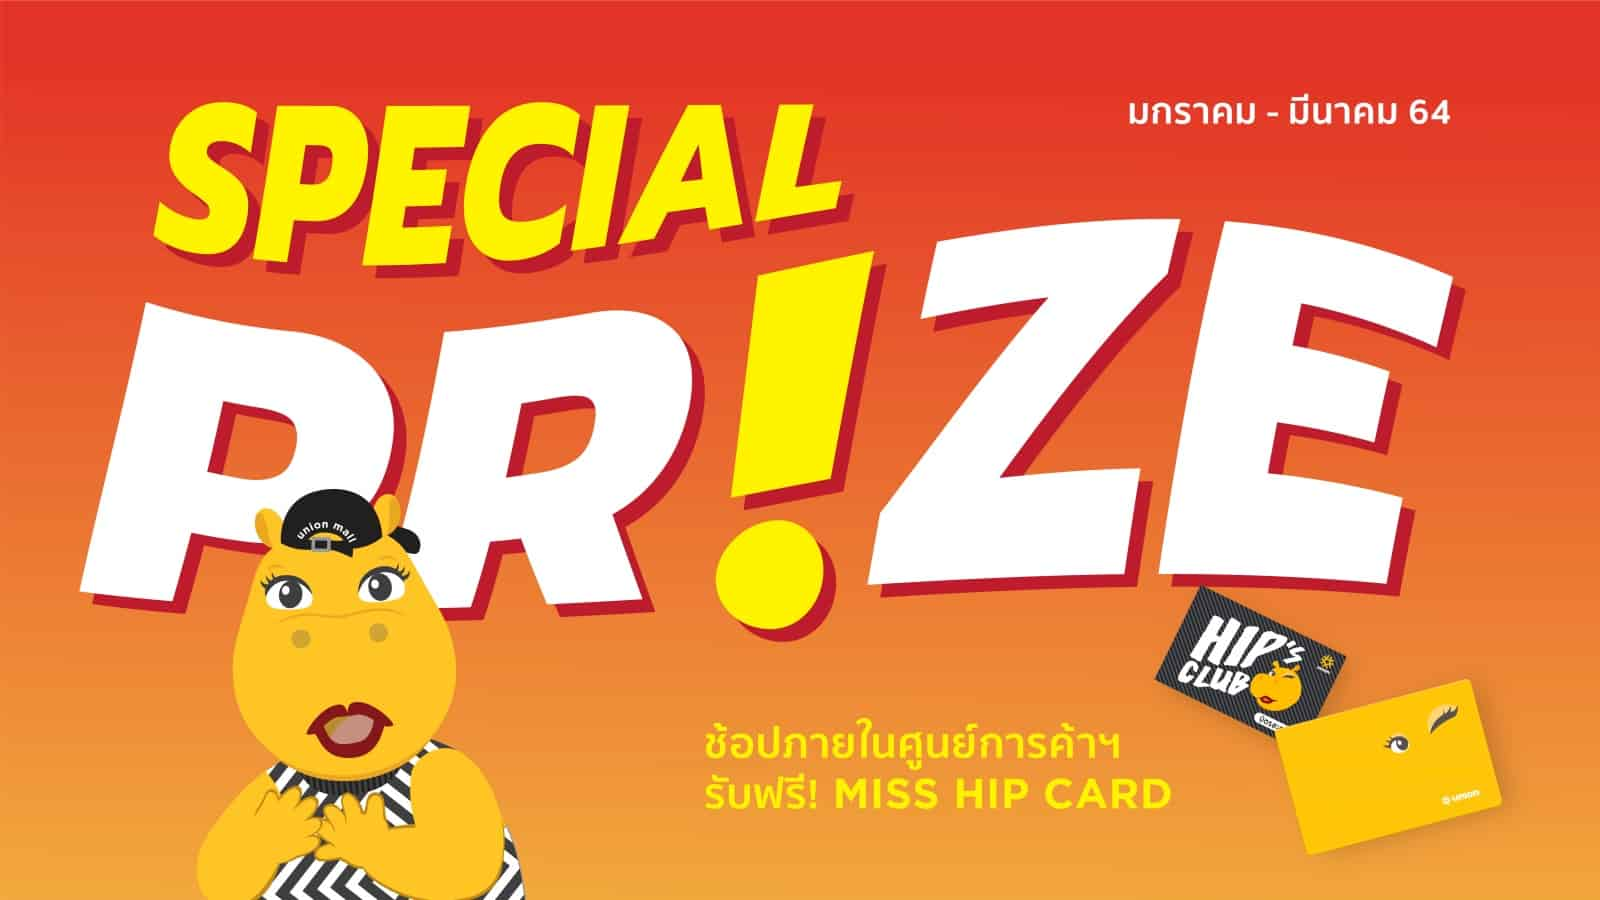 Hip's Special Prize 2021